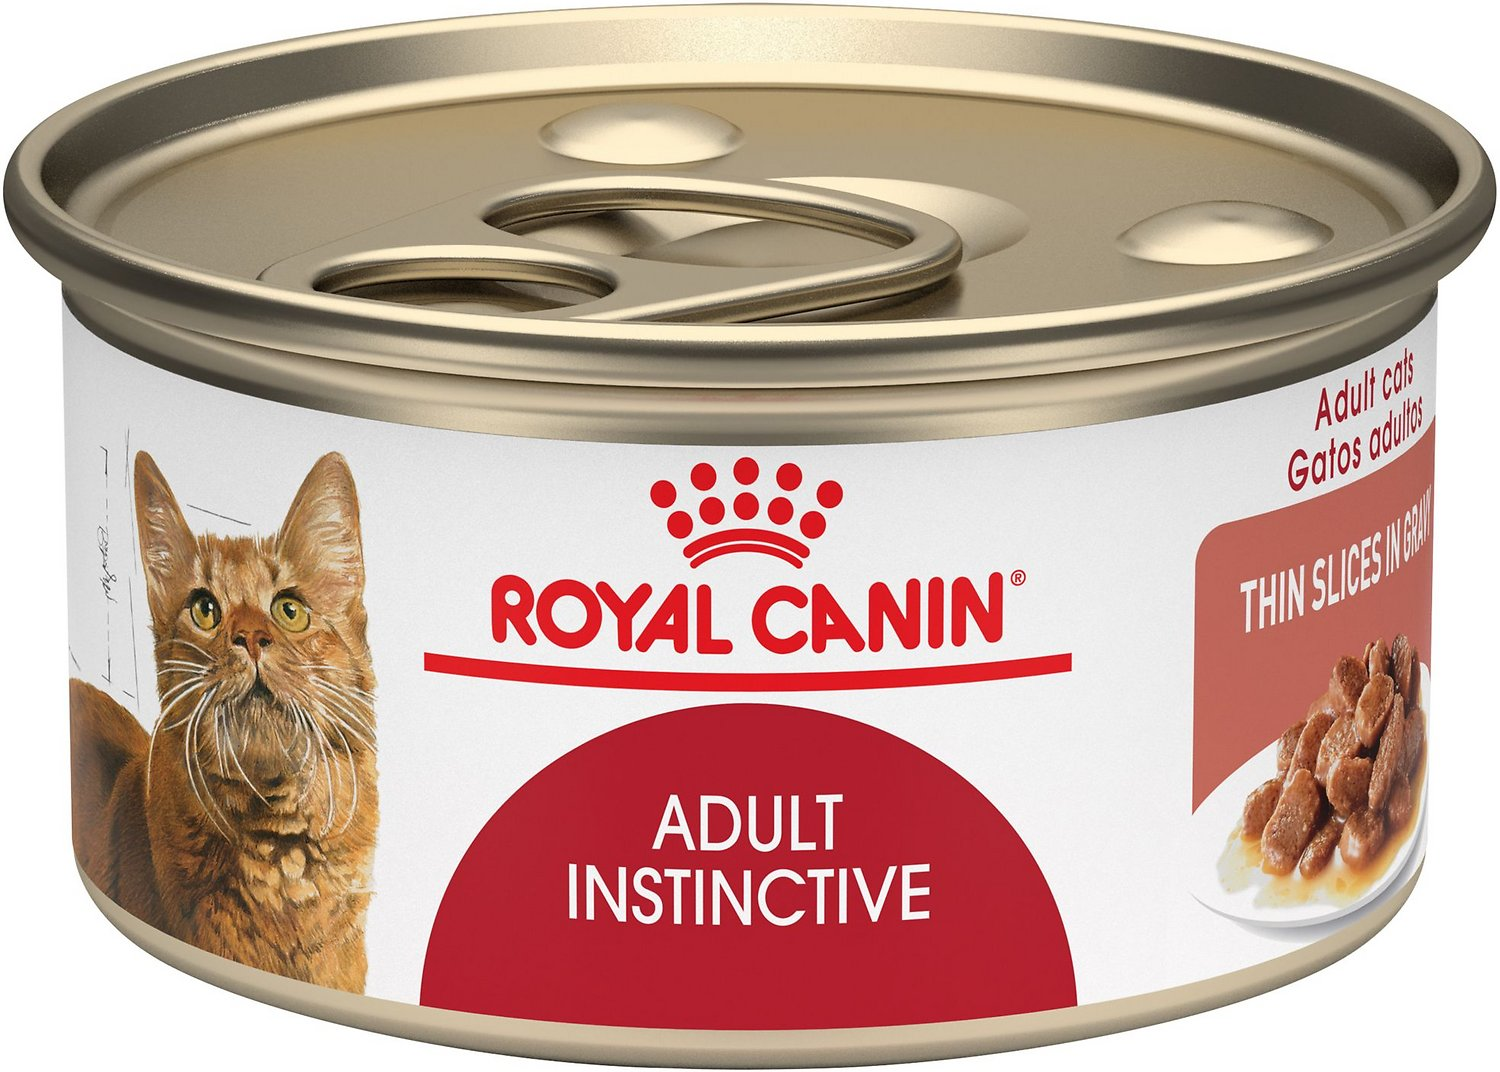 royal canin canned cat food babycat formula 3 ounce cans by royal canin bunte. Black Bedroom Furniture Sets. Home Design Ideas